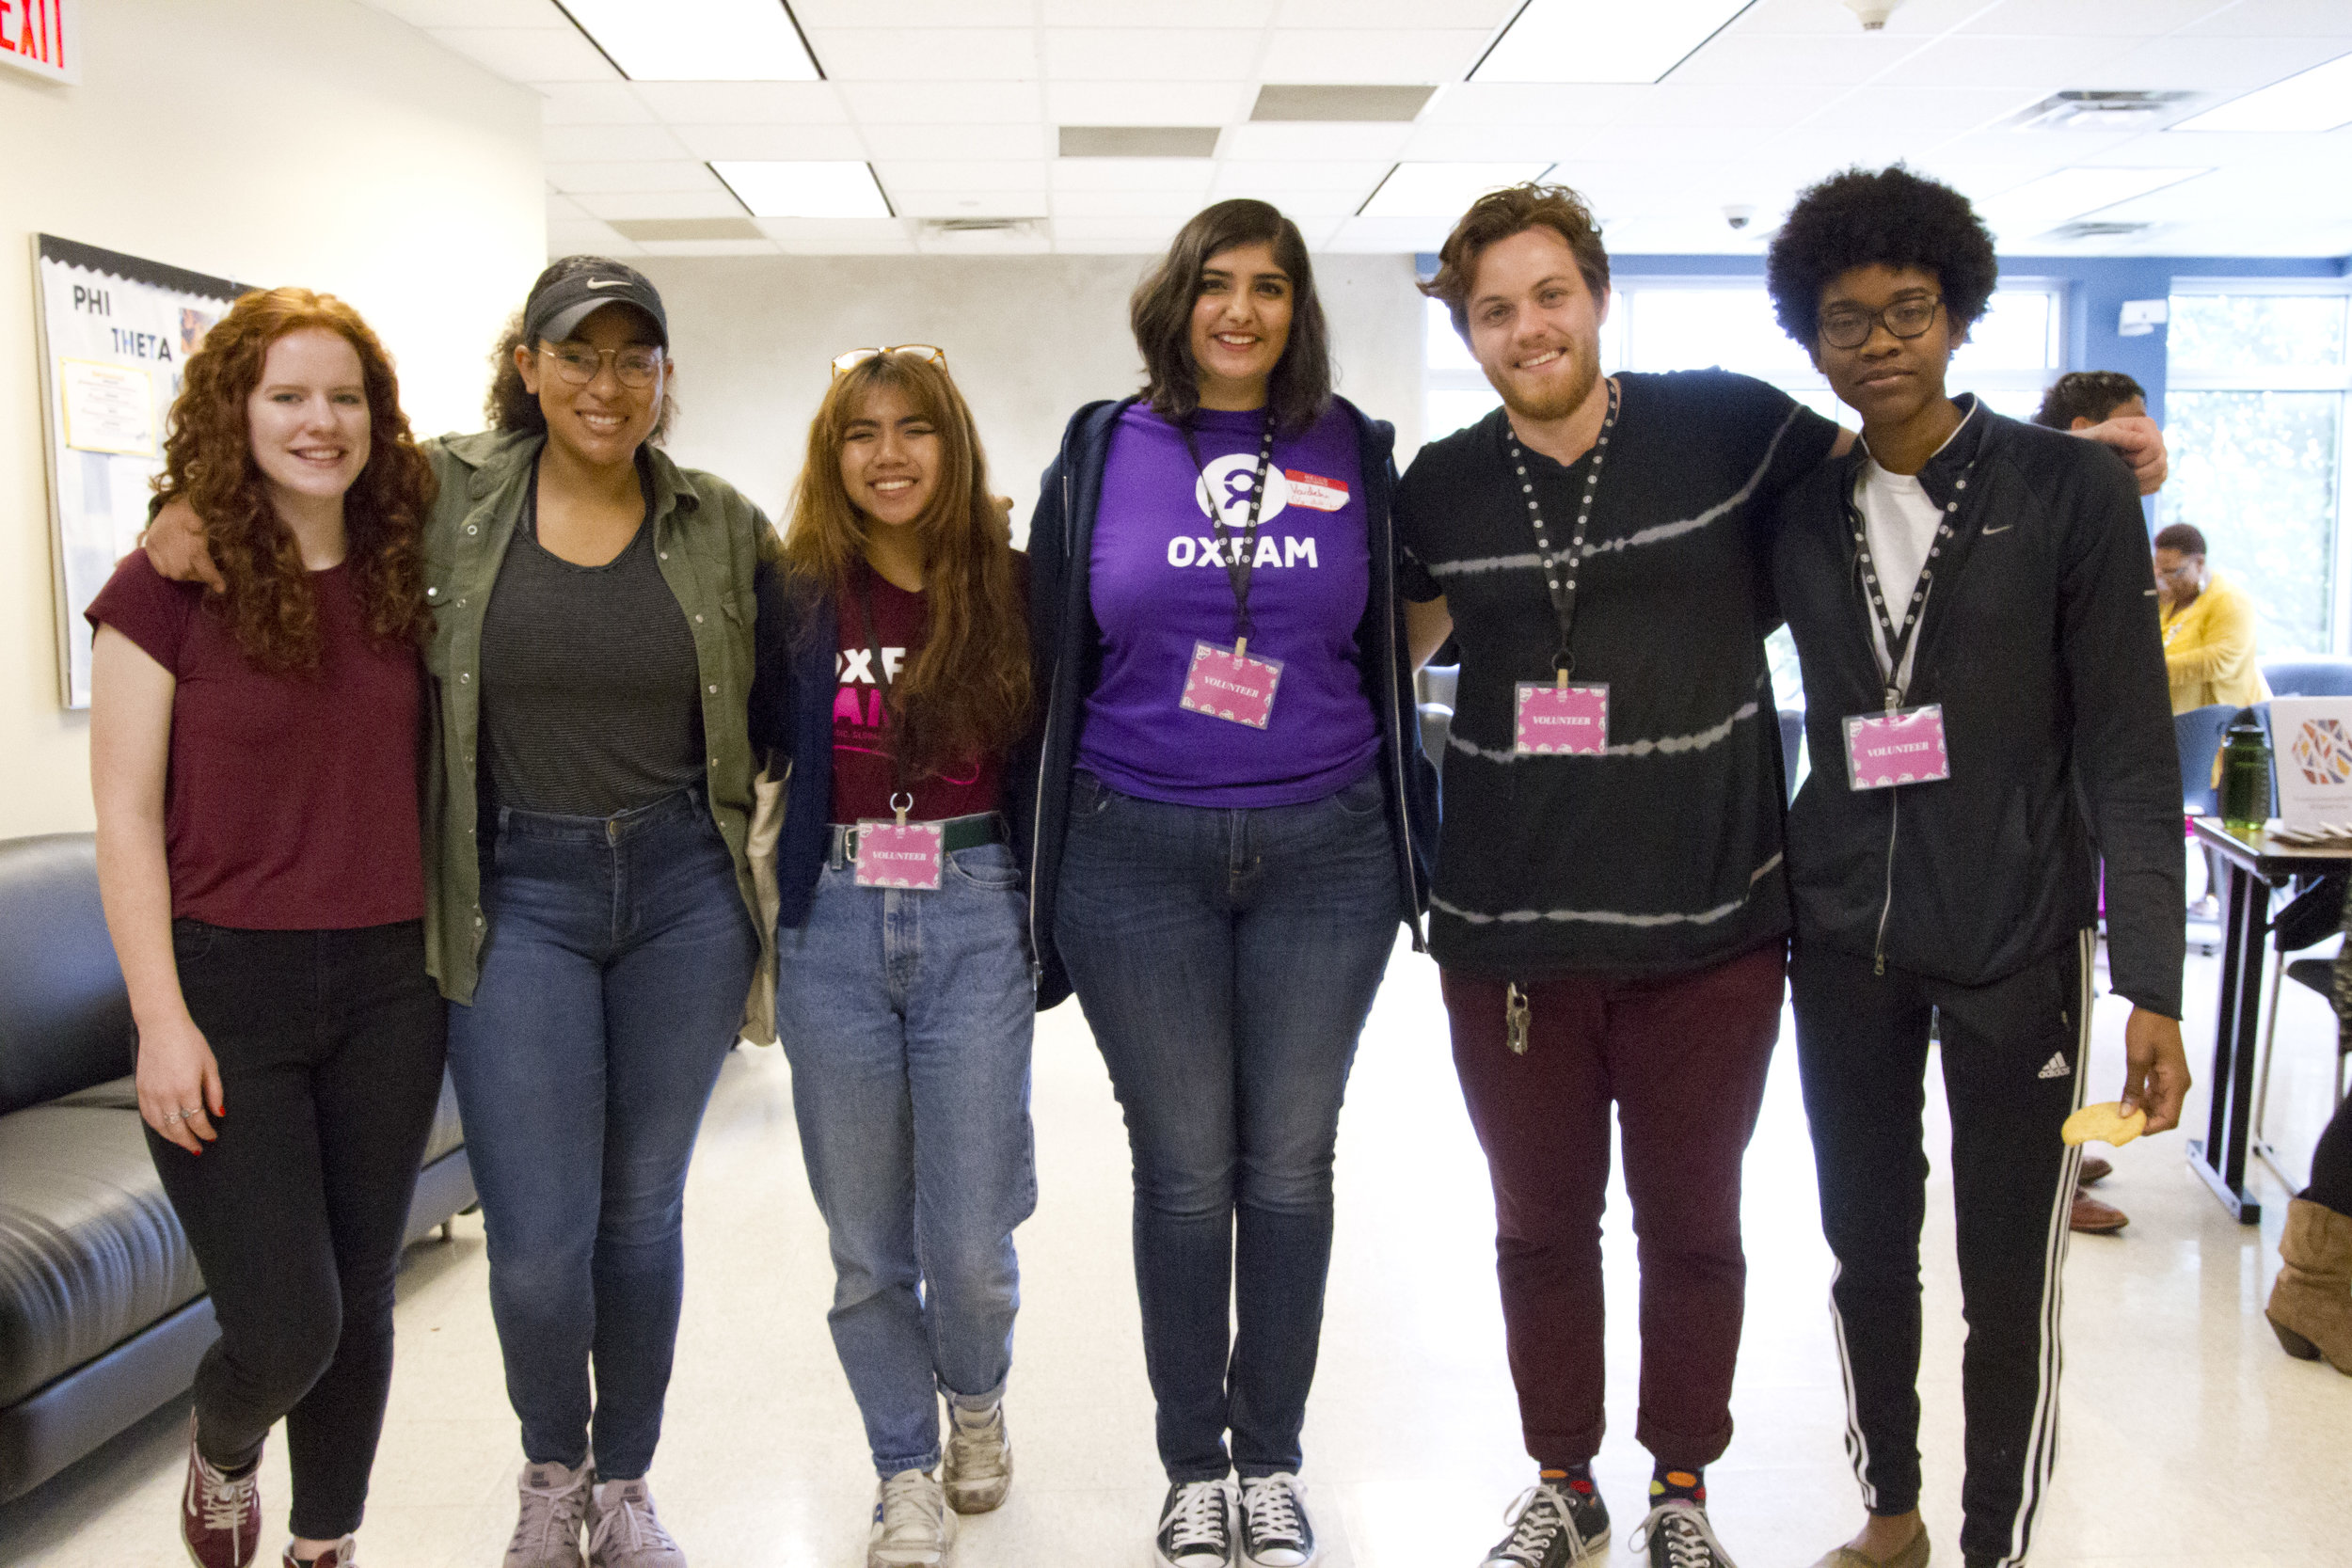 Volunteer - WE Con 2018 volunteers from The University of Texas at Austin Oxfam division.